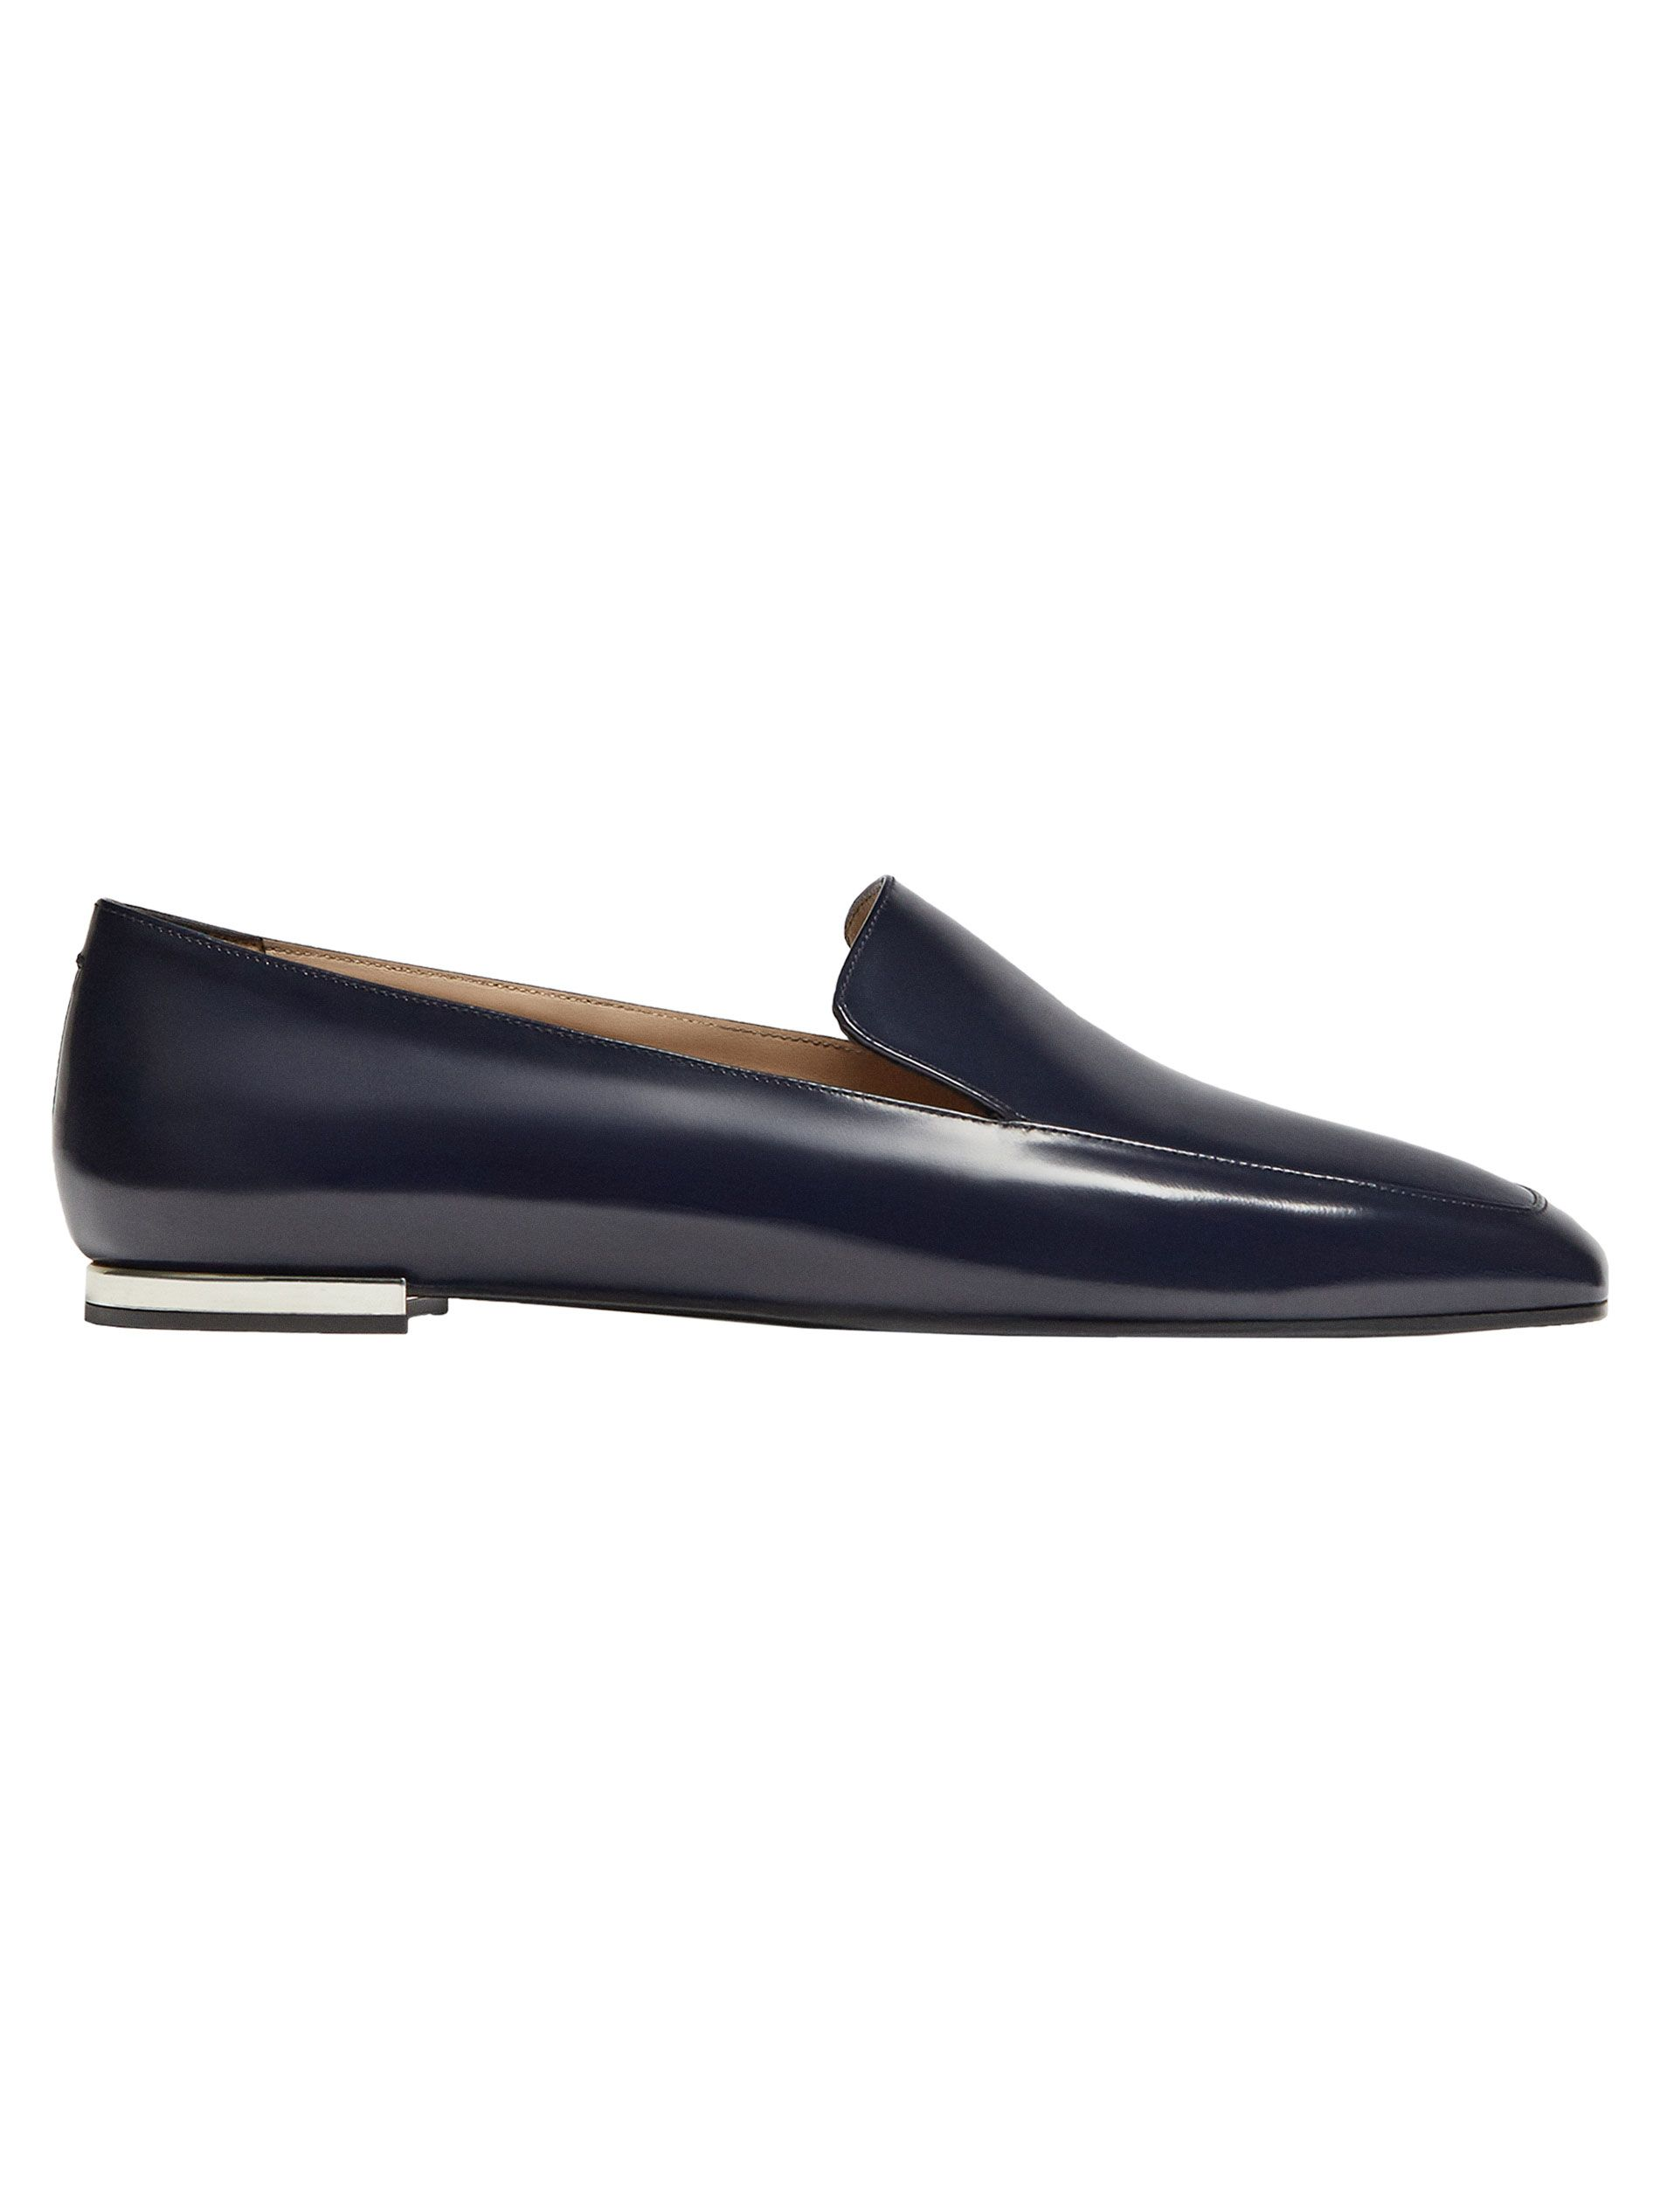 35b09c21a8 Blue antik leather loafers. Featuring a metal detail and leather lining and  insoles.